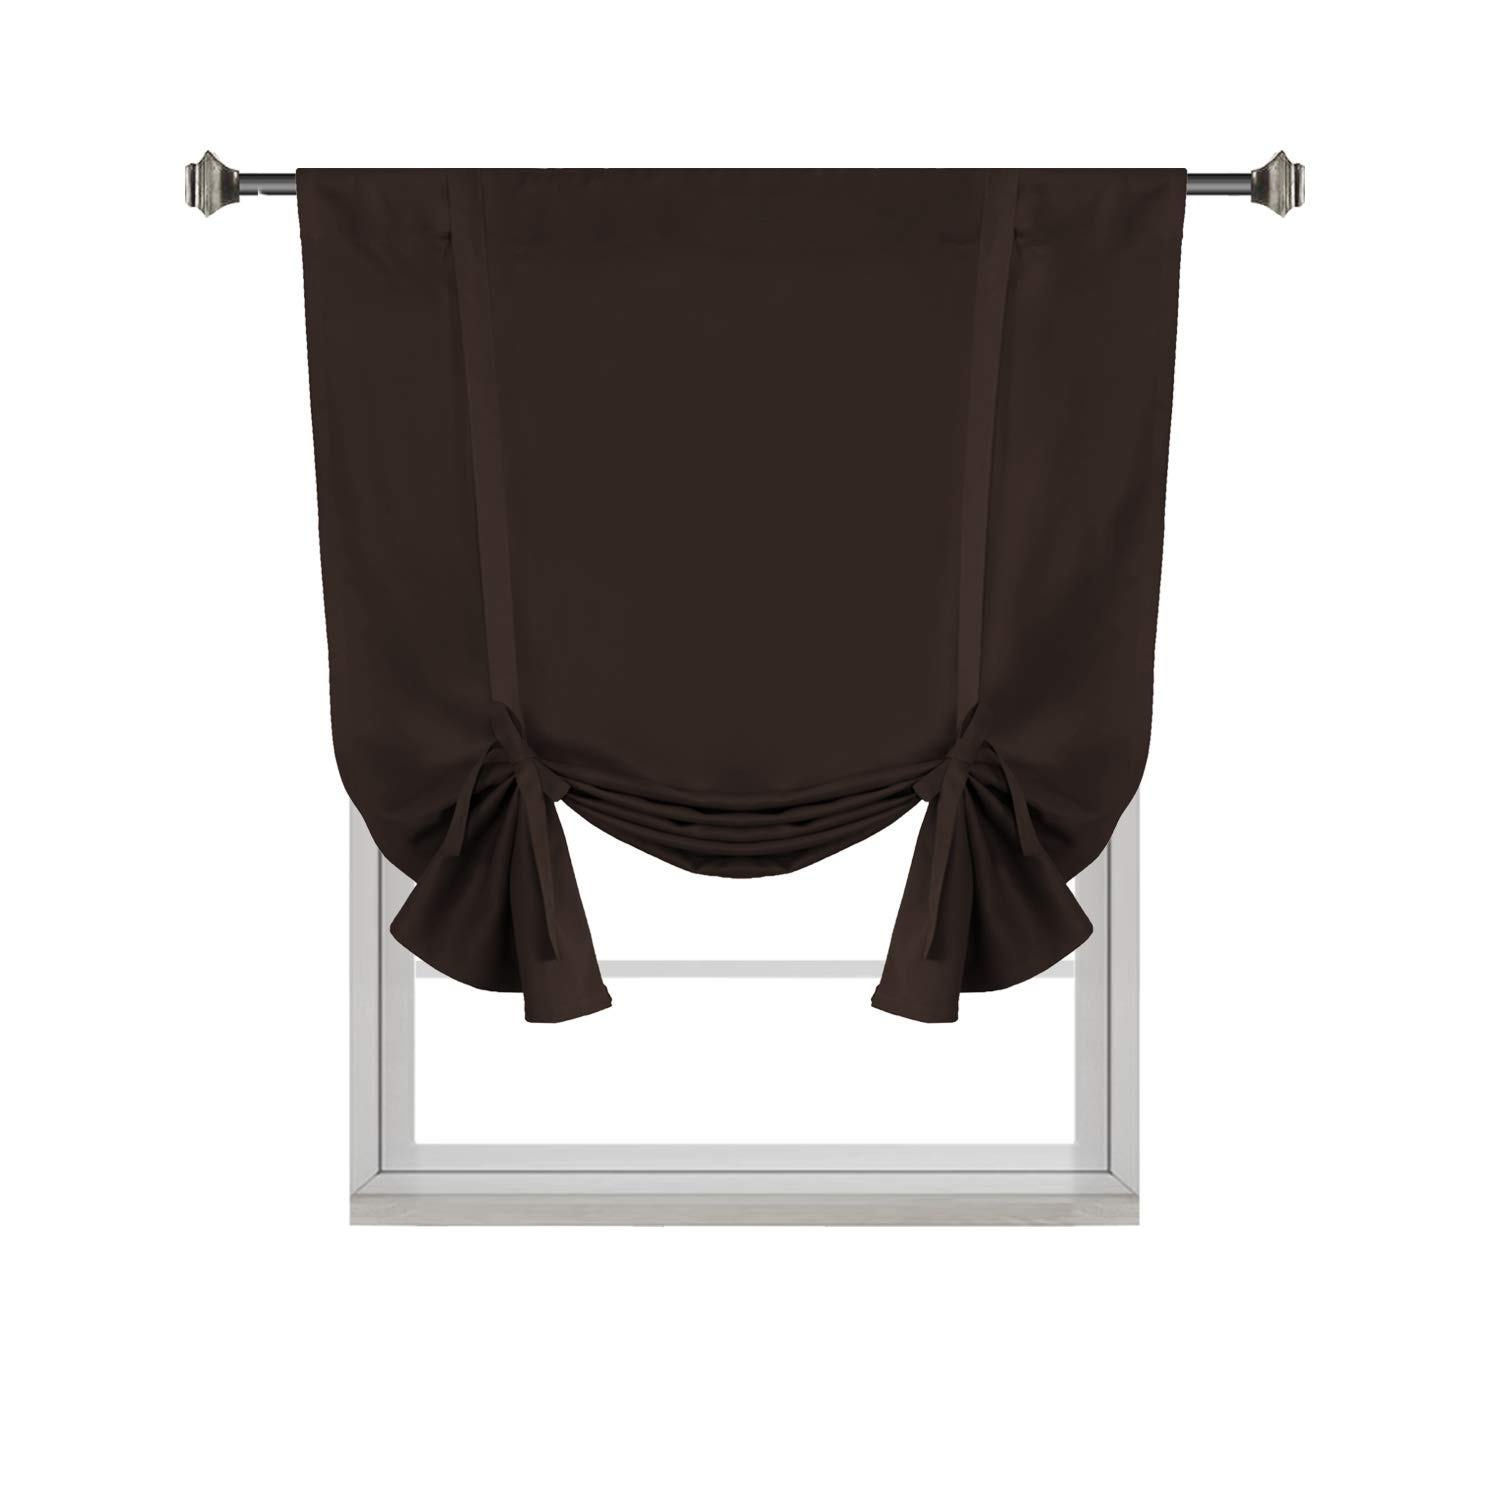 H.VERSAILTEX Blackout Energy Efficient Tie Up Shades -Rod Pocket Panel for Small Window, Chocolate Brown 42W x 63L (Set of 1)